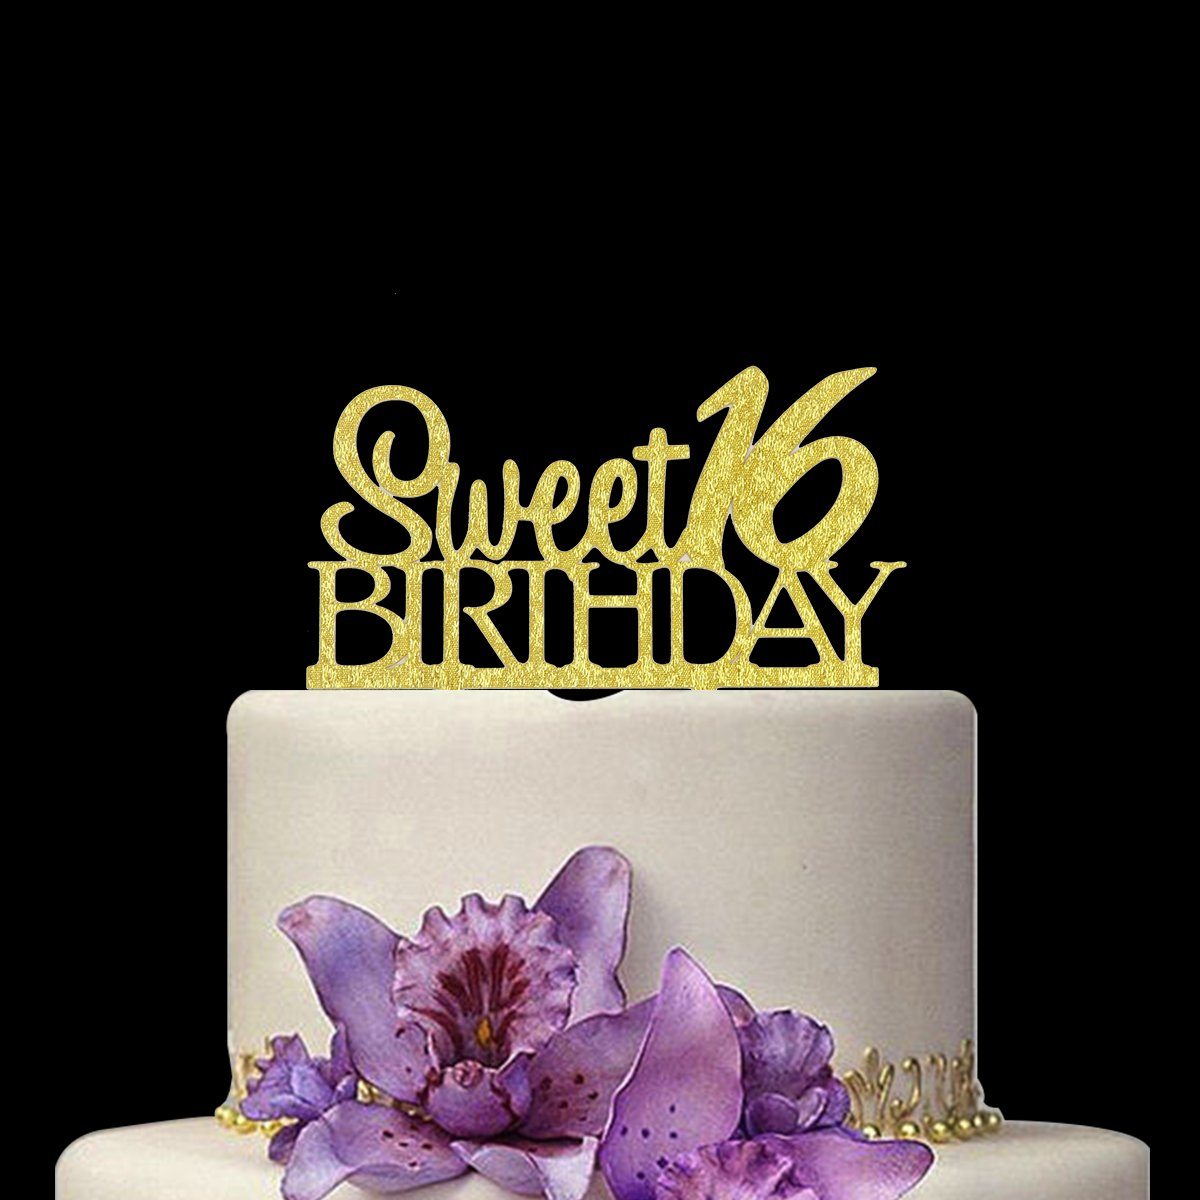 Amazon Huuflyty Sweet 16 Cake Topper 16th Birthday For Party Themes Decoration Supplies Toys Games